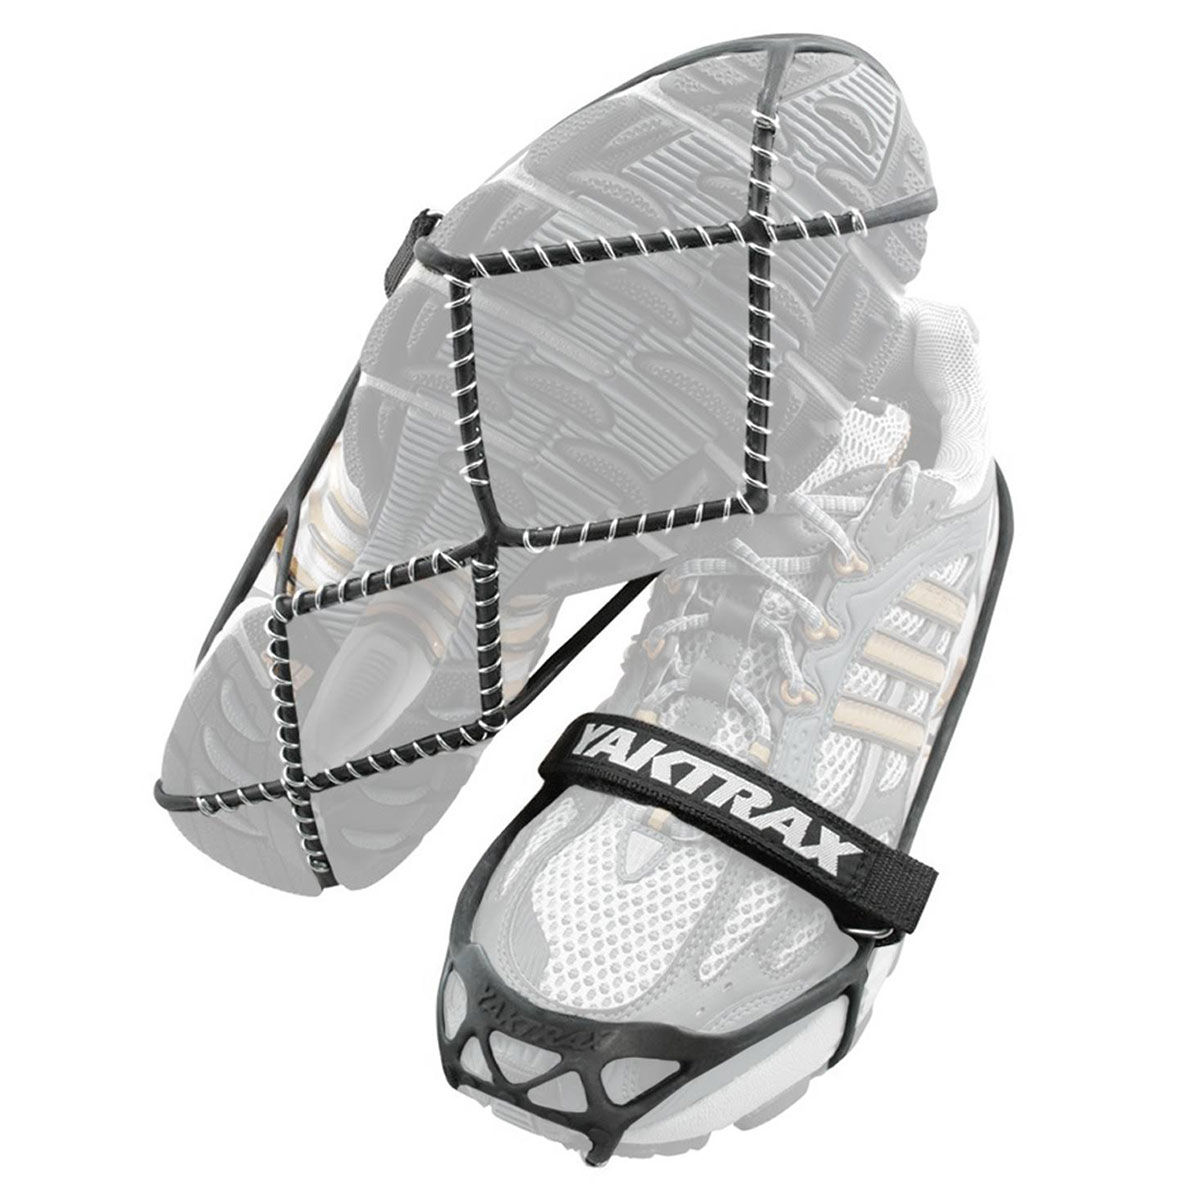 Yaktrax Pro Traction Device - Various Patterns, XL